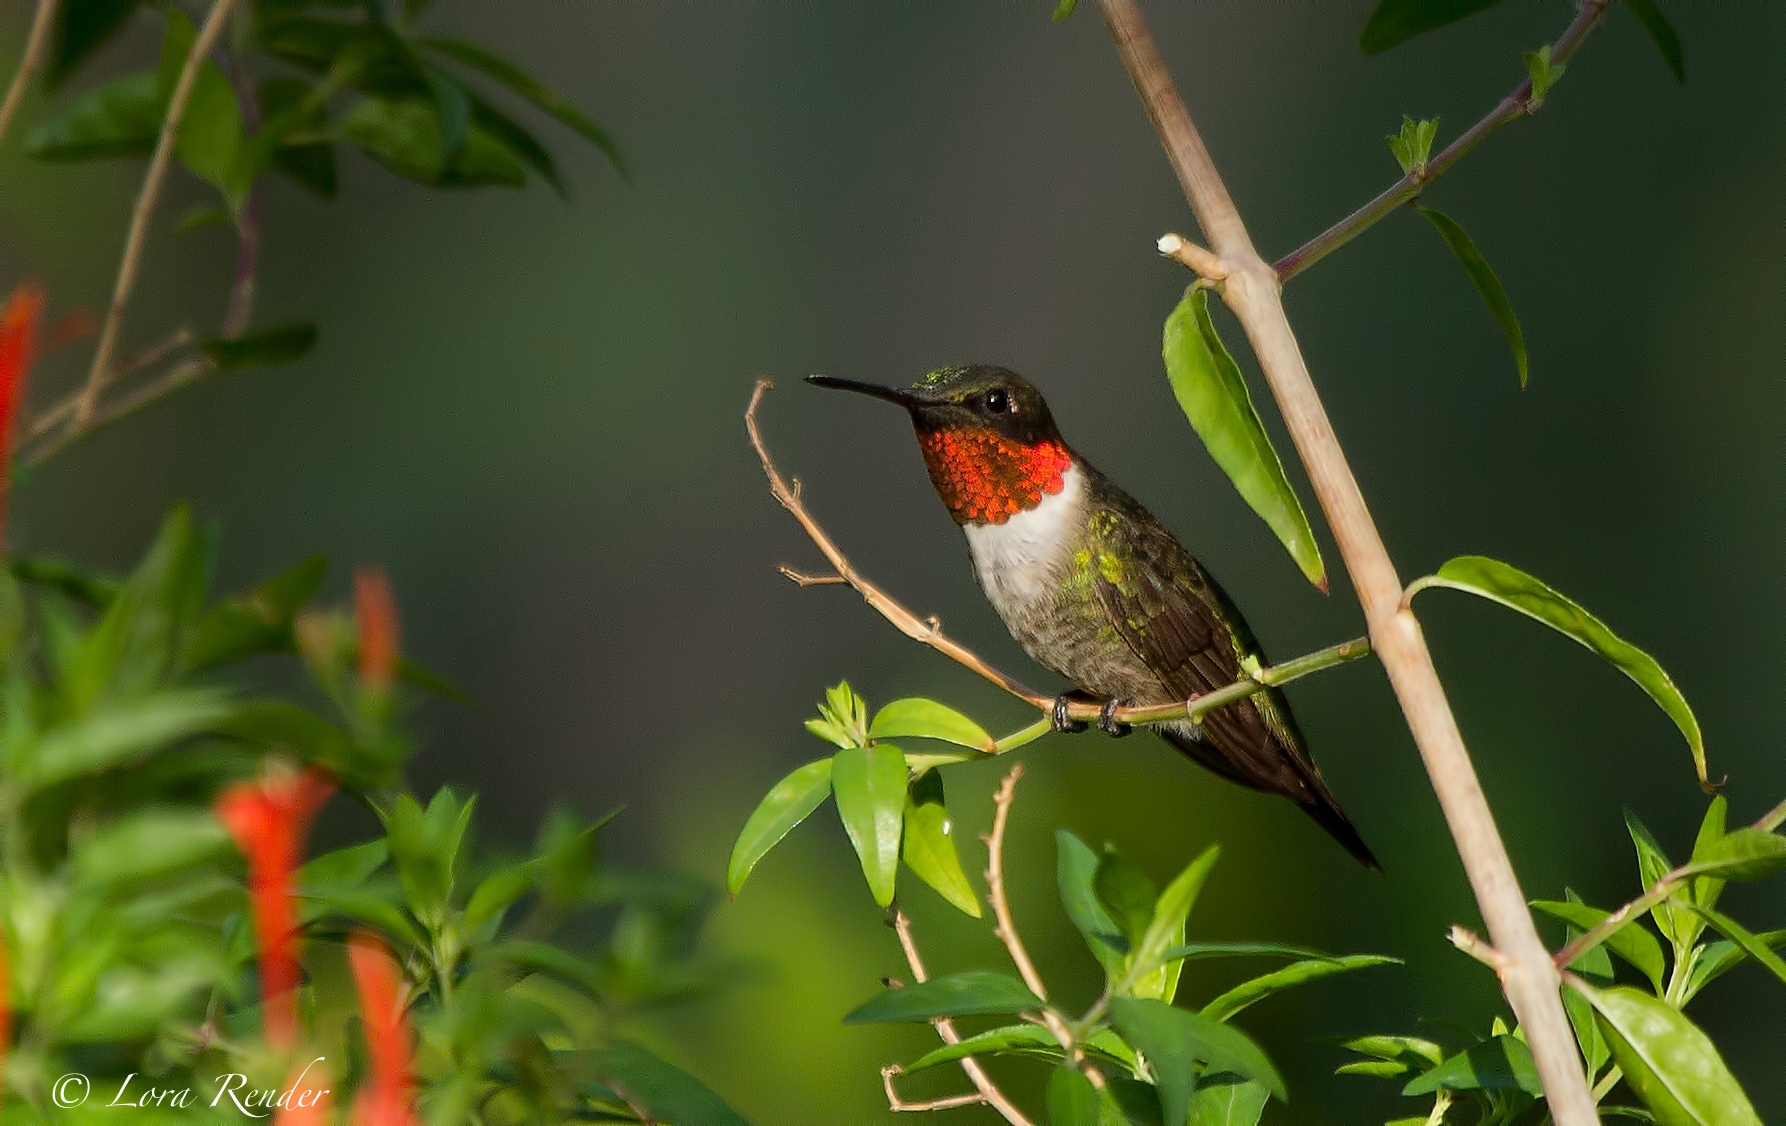 eBird maps show it's time to look for Ruby-throated Hummingbird